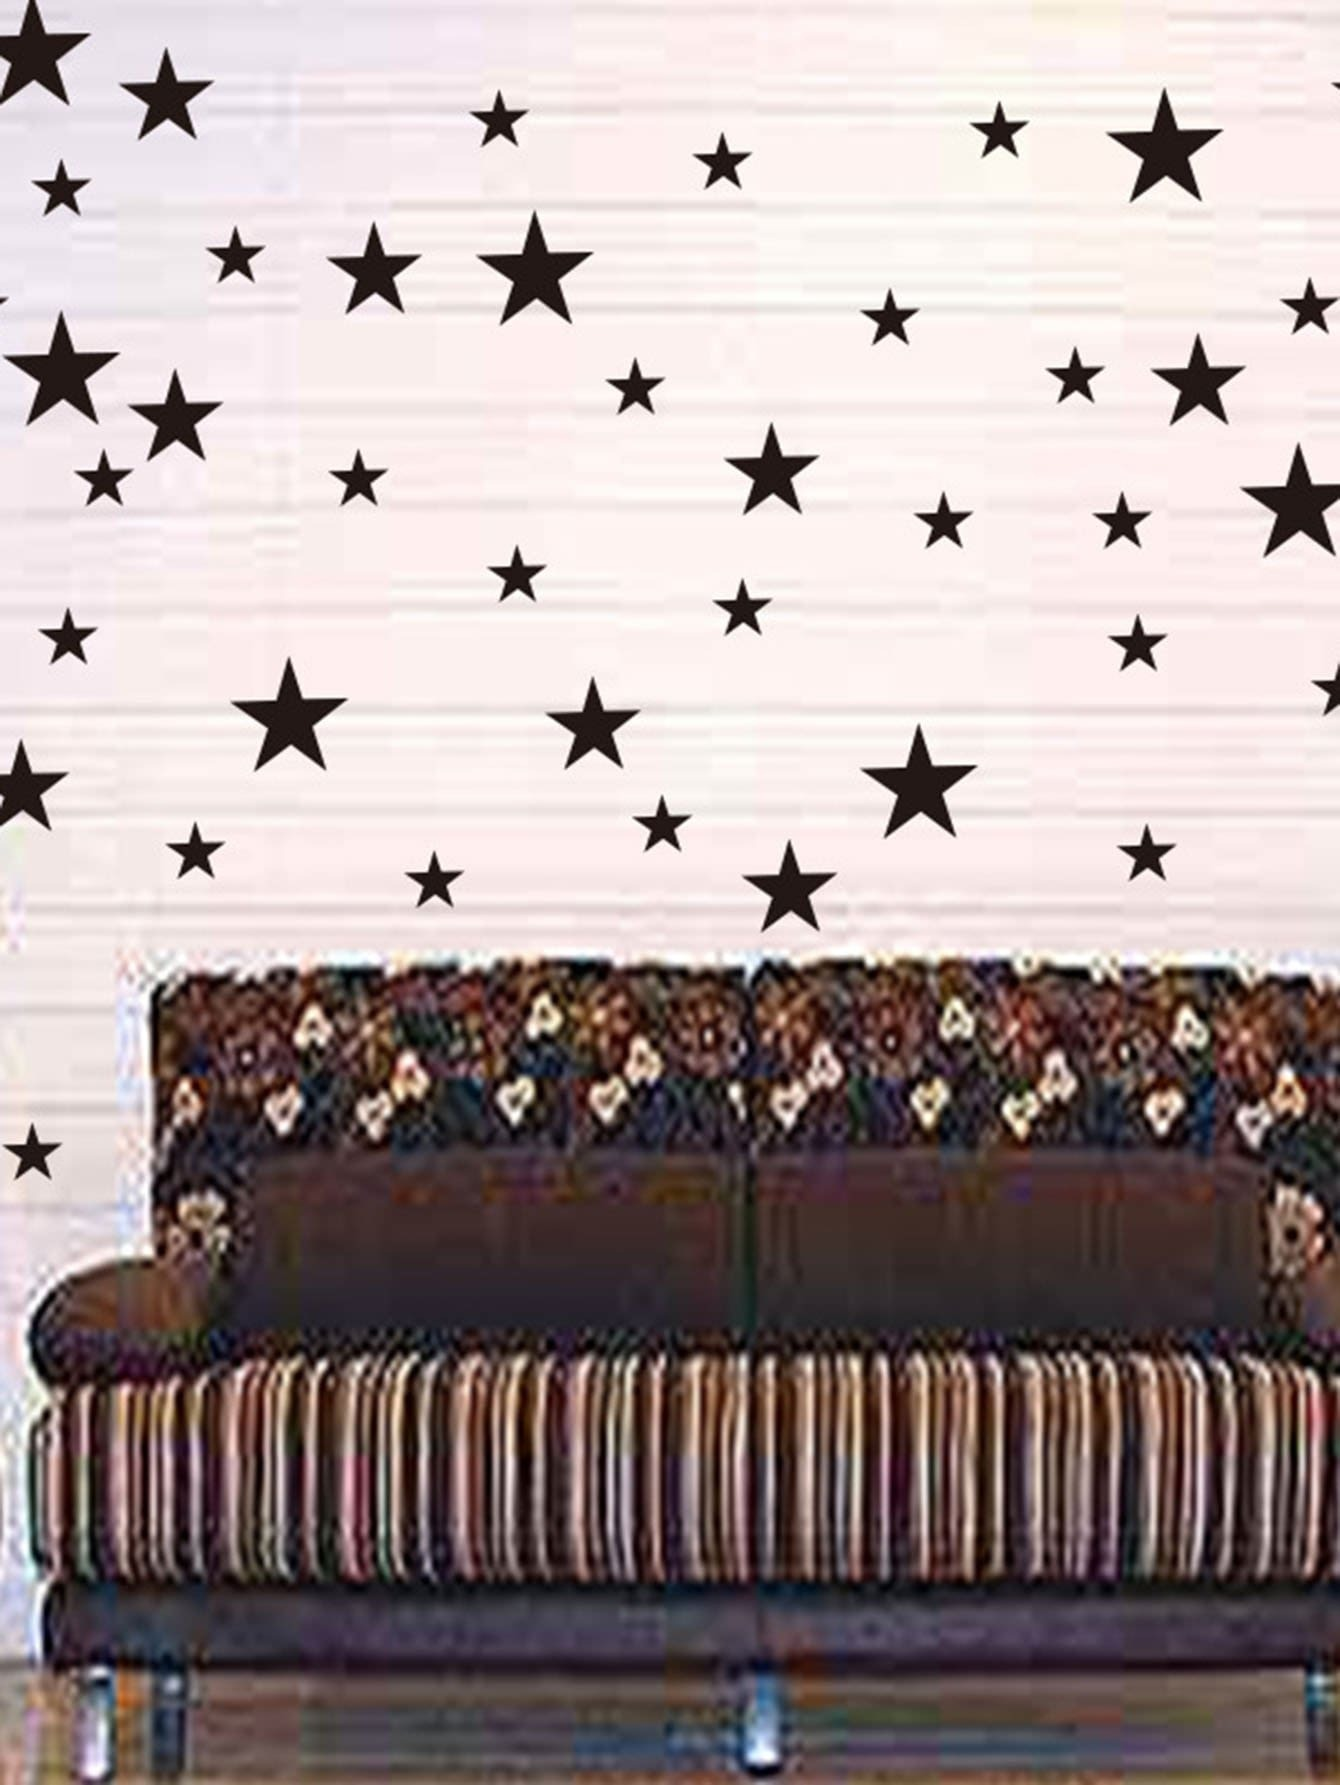 Star Wall Sticker Pack 45 pcs pack animal blue whale fish mini paper sticker diary decoration diy scrapbooking label seal sticker stationery